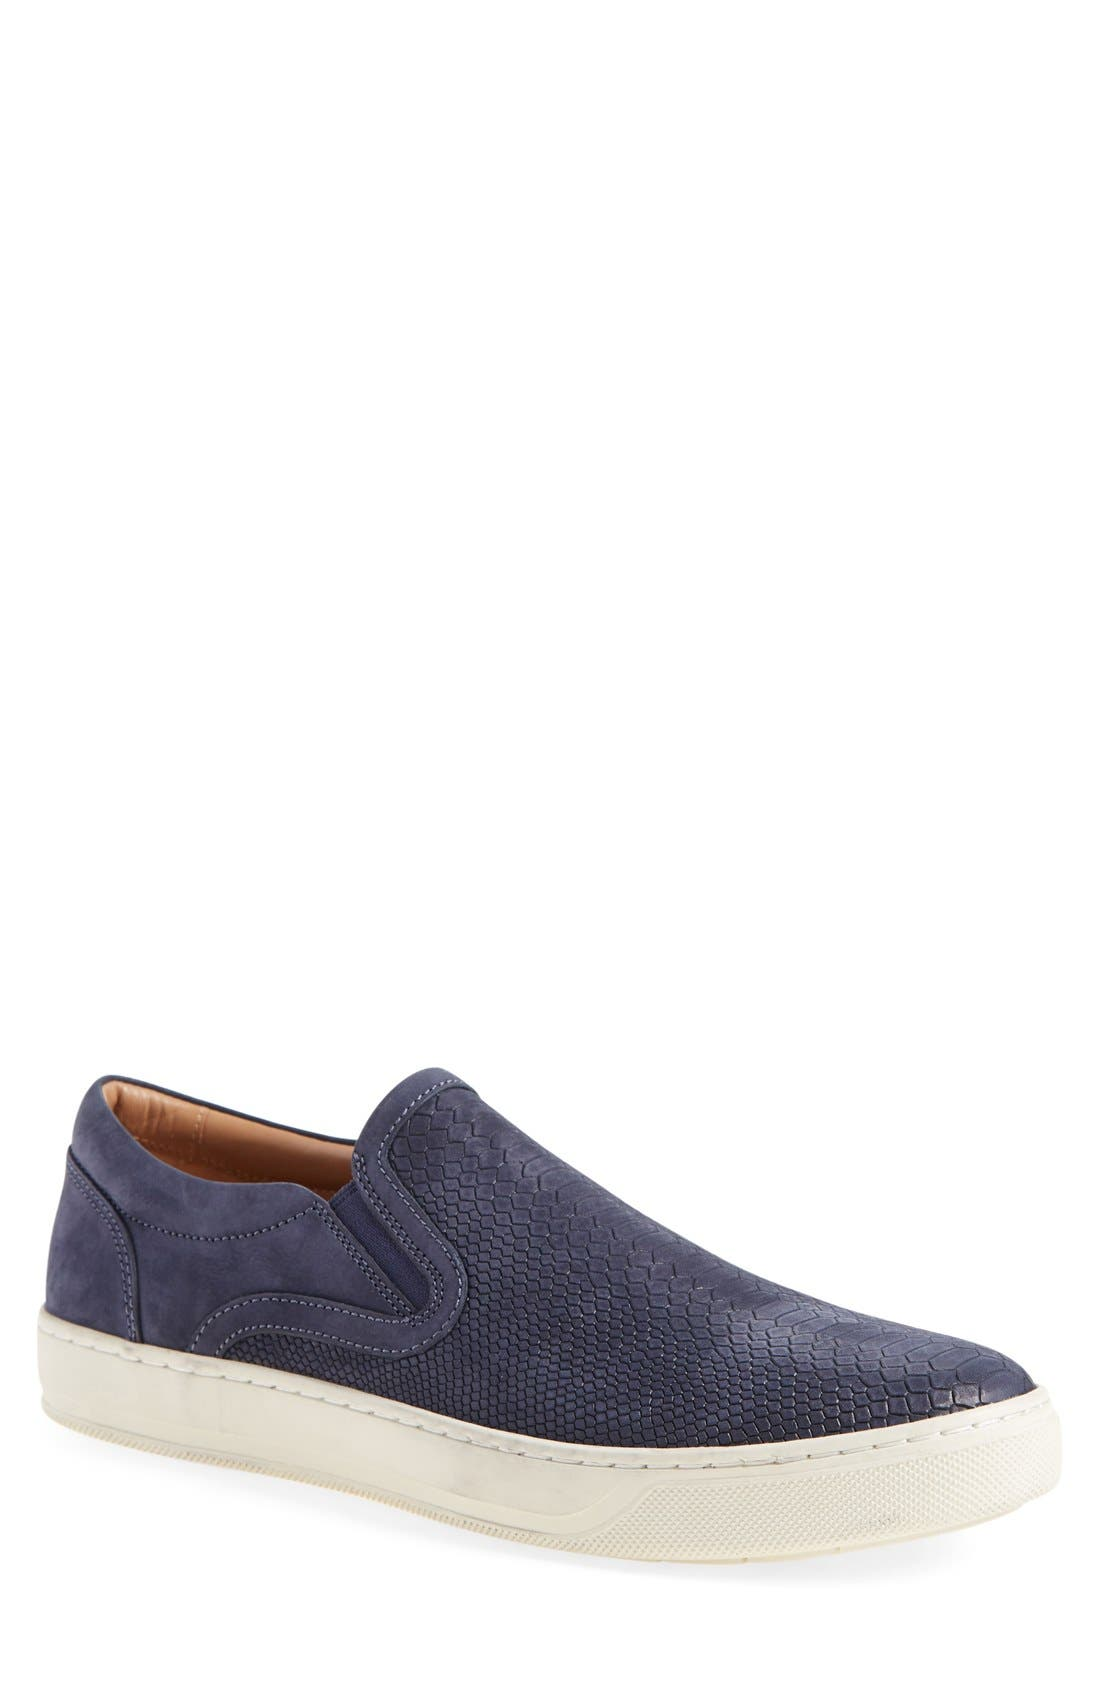 'Ace' Slip-On,                         Main,                         color, Navy Leather